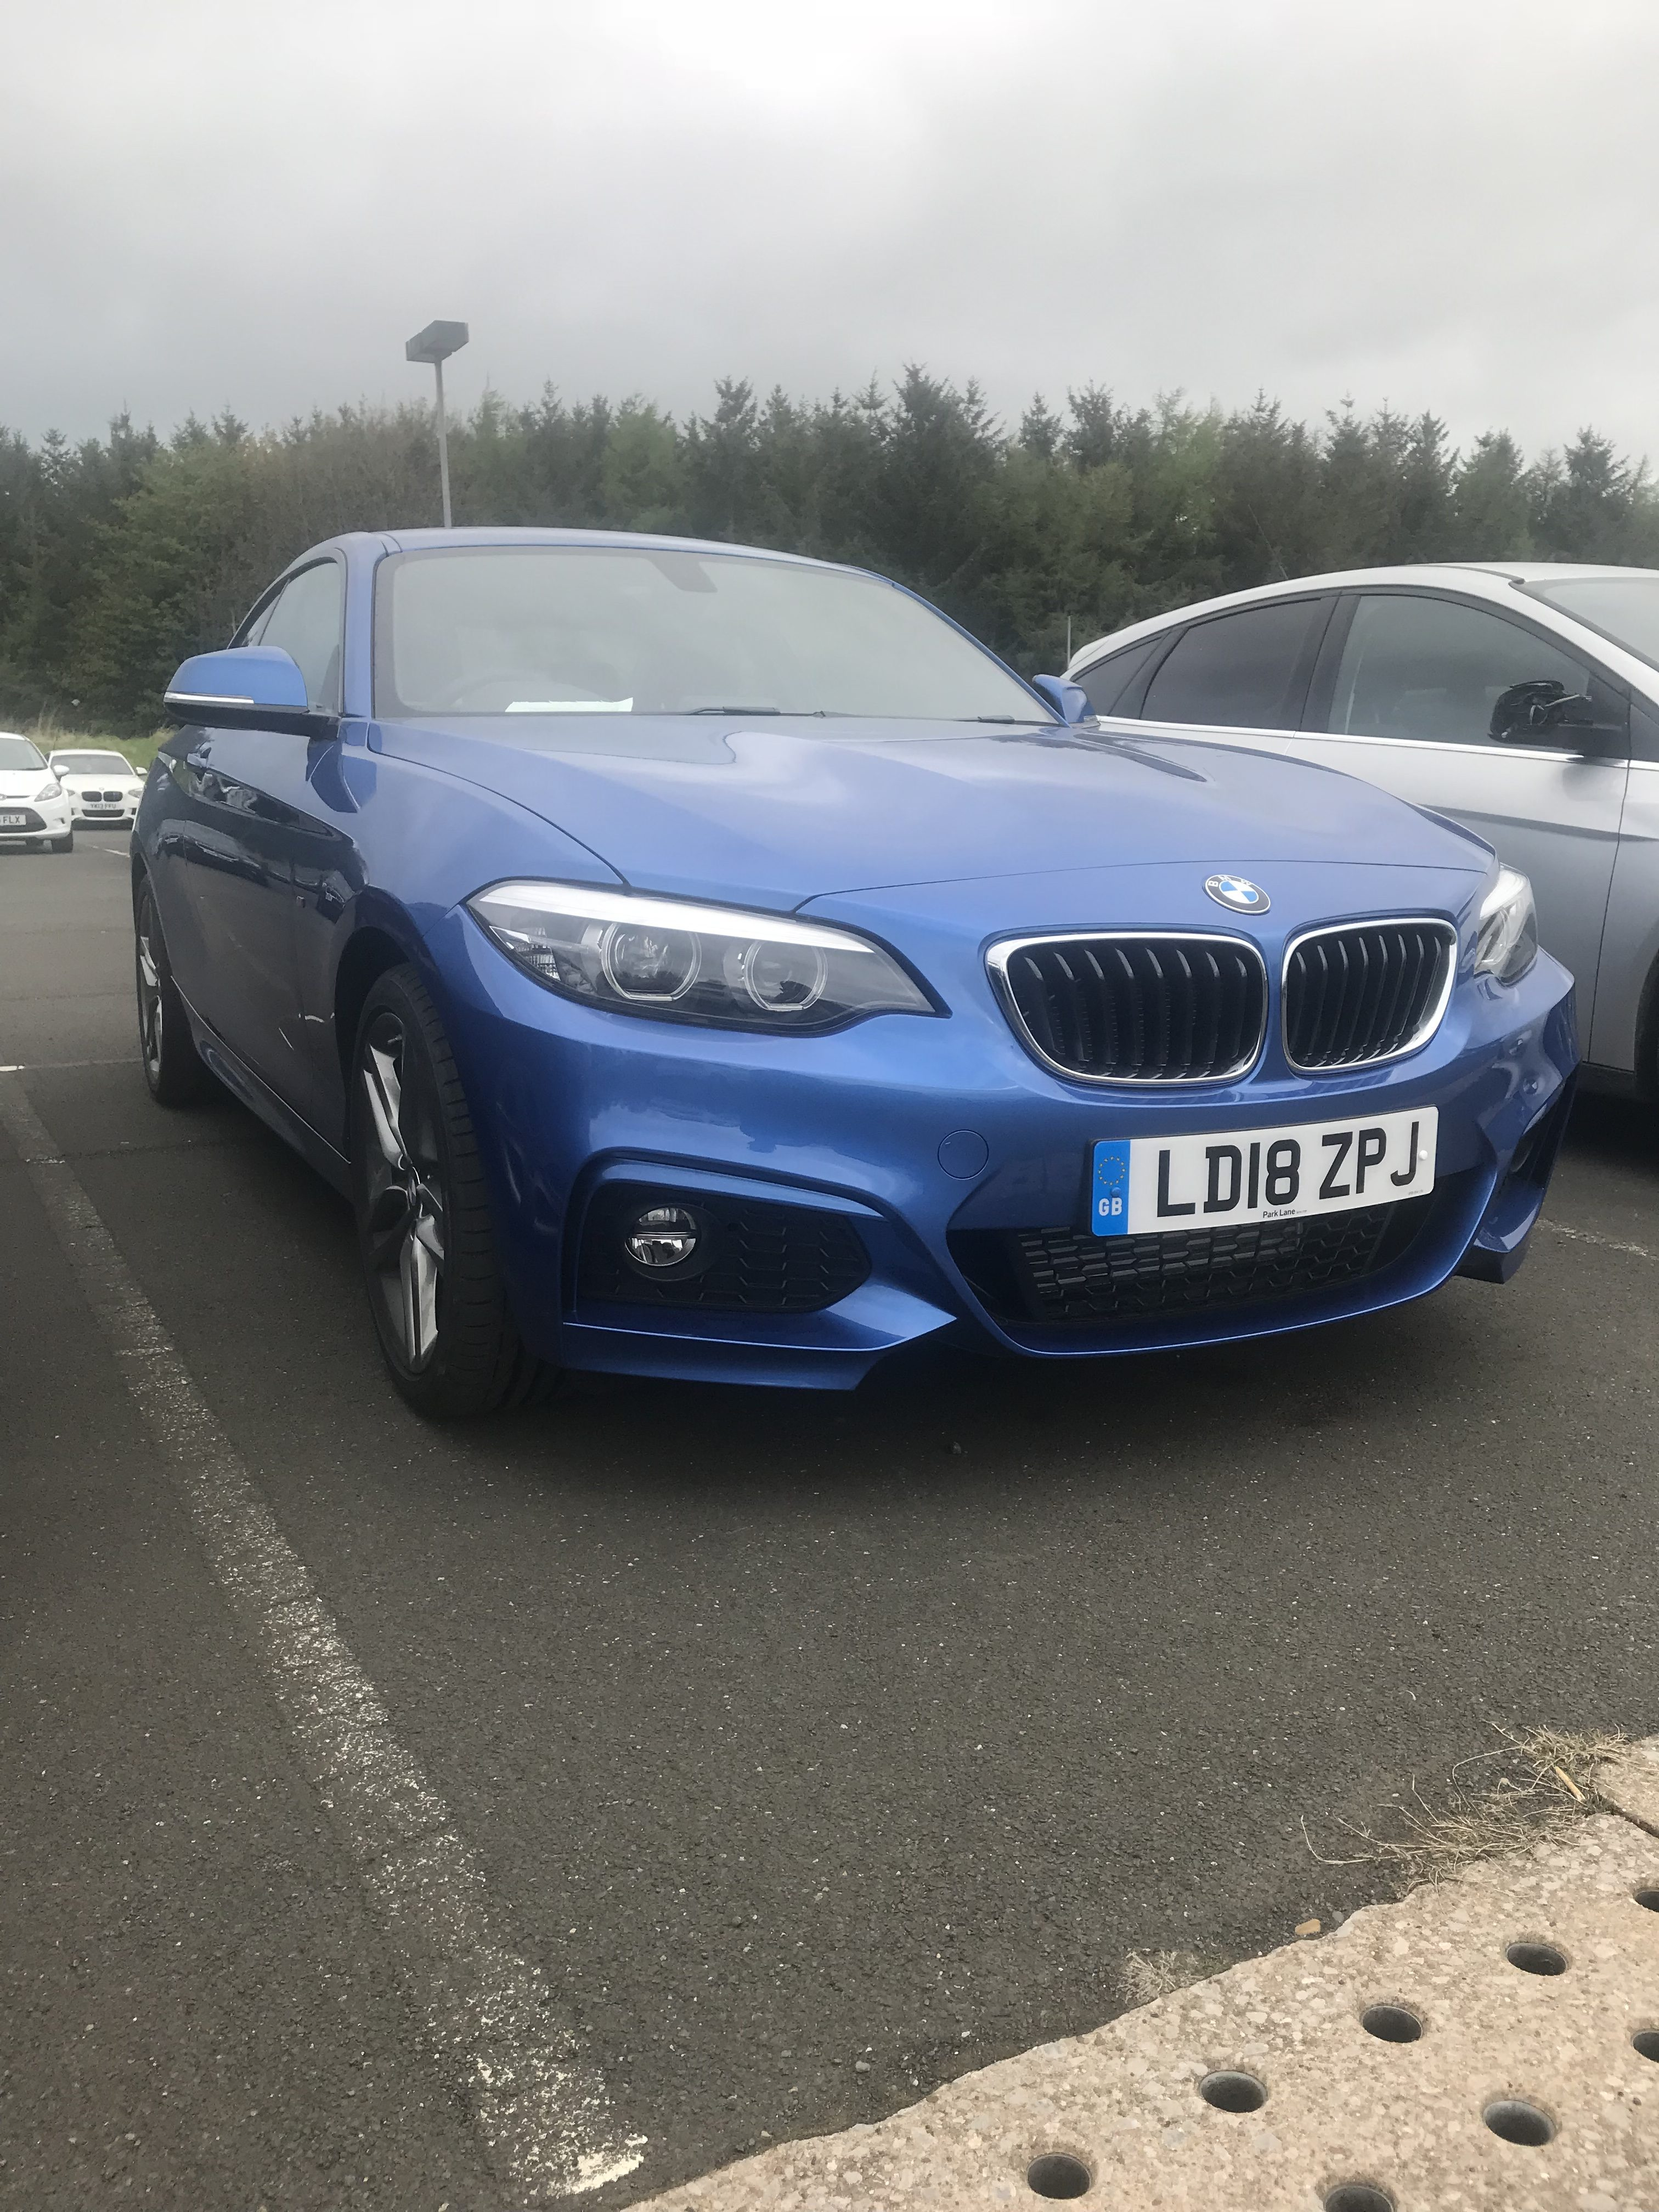 BMW 2 Series Coupe 218i Petrol M Sport 2 door Nav Car Leasing Best Deals